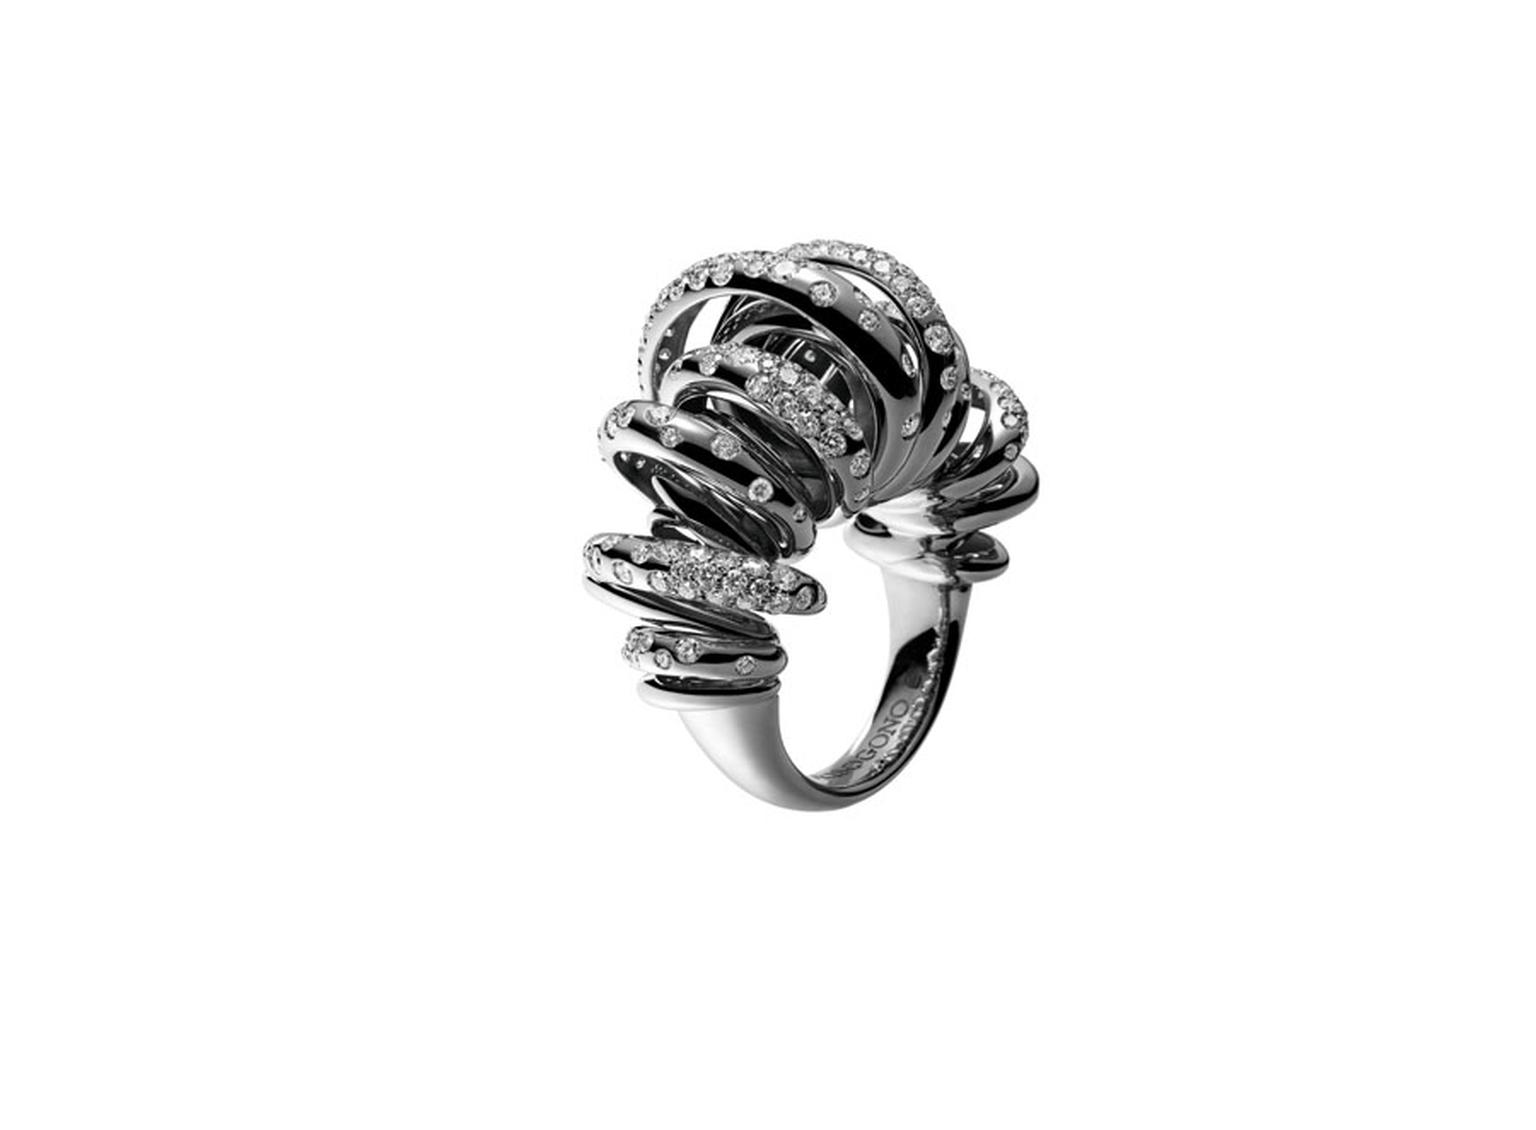 A statement summer ring from de GRISOGONO's 'Sole' collection.